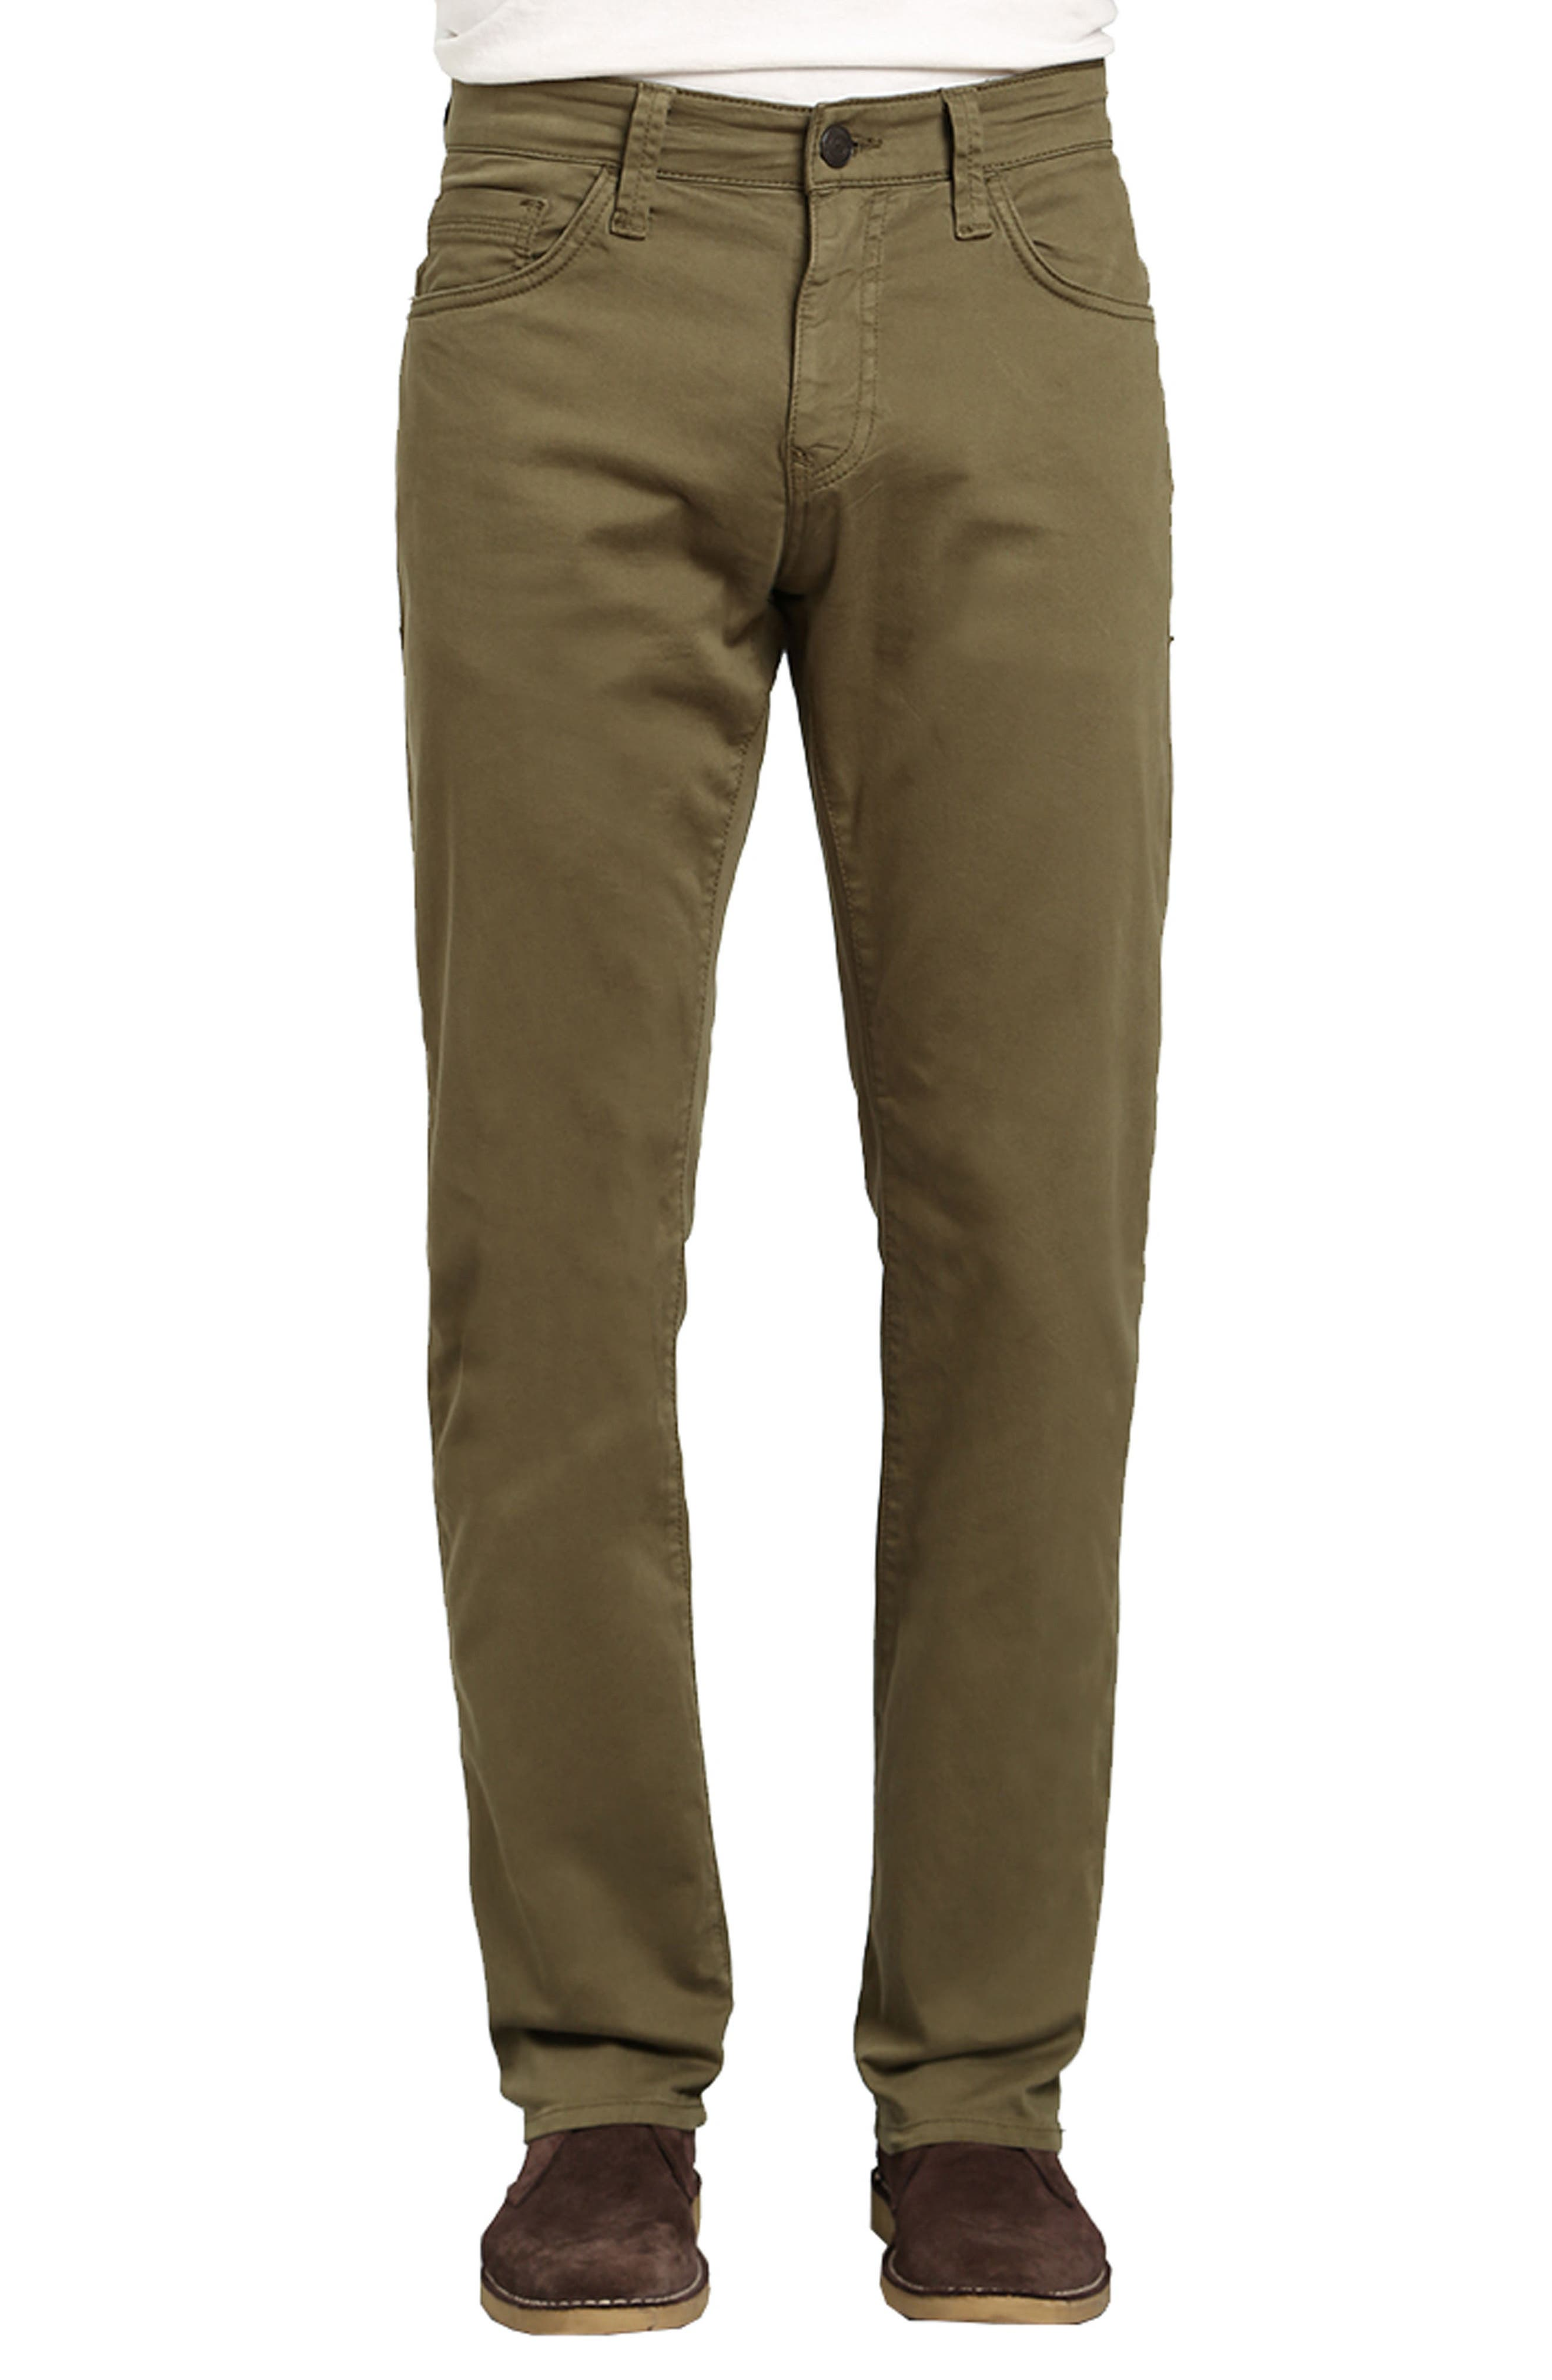 Zach Straight Fit Twill Pants,                             Main thumbnail 1, color,                             GREEN OLIVE TWILL